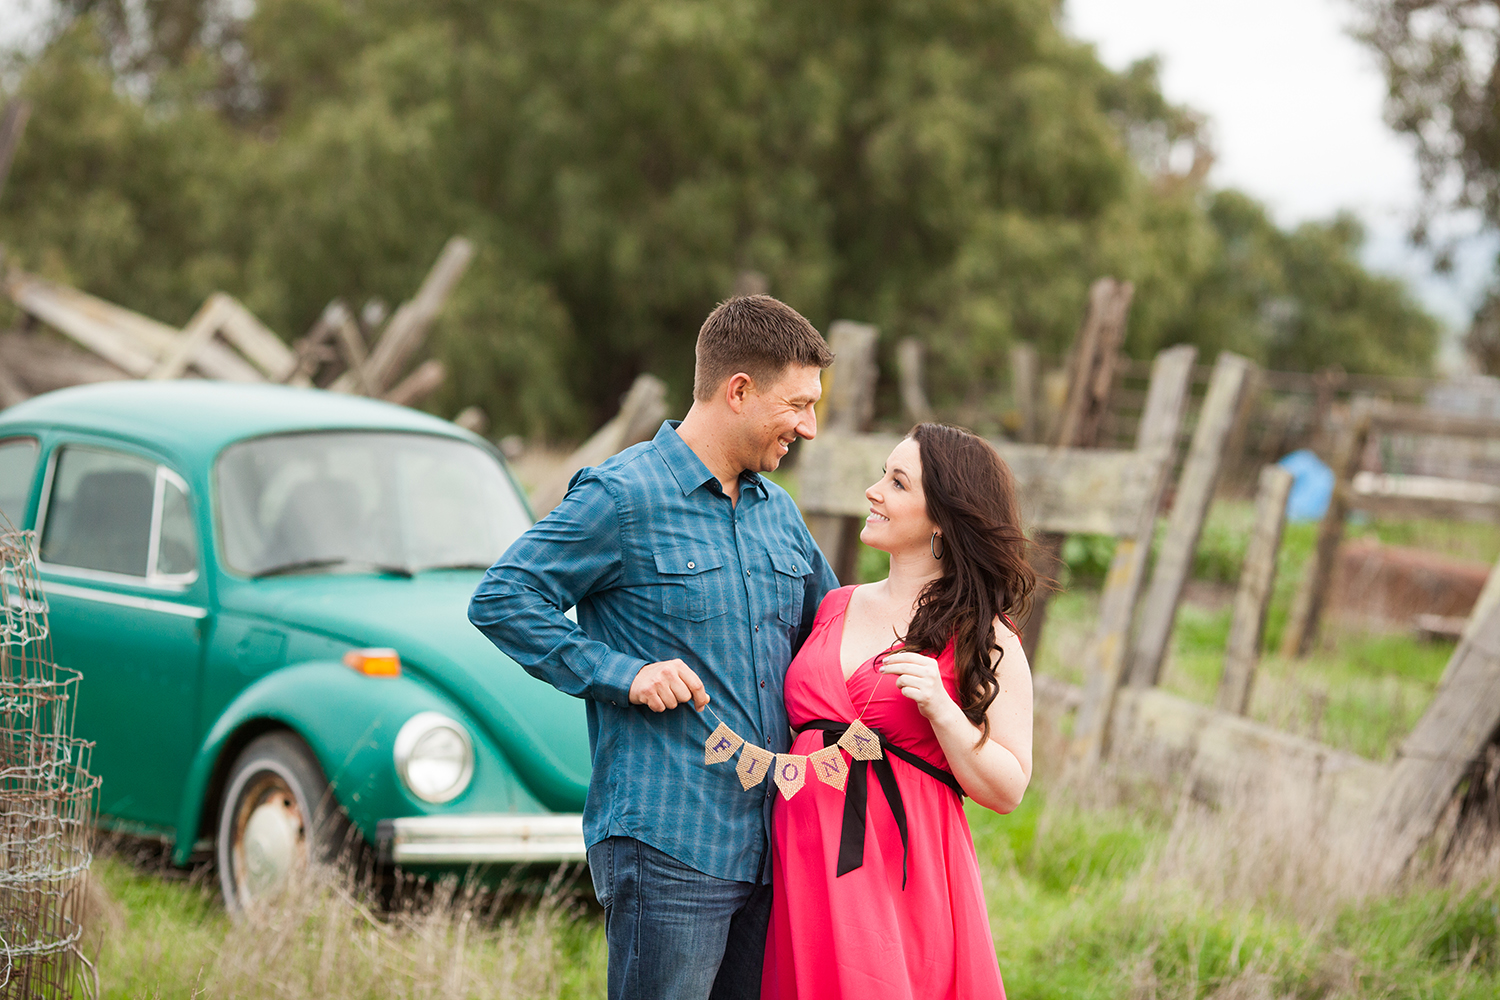 Dena_Rooney_Maternity_Portraits_063.jpg